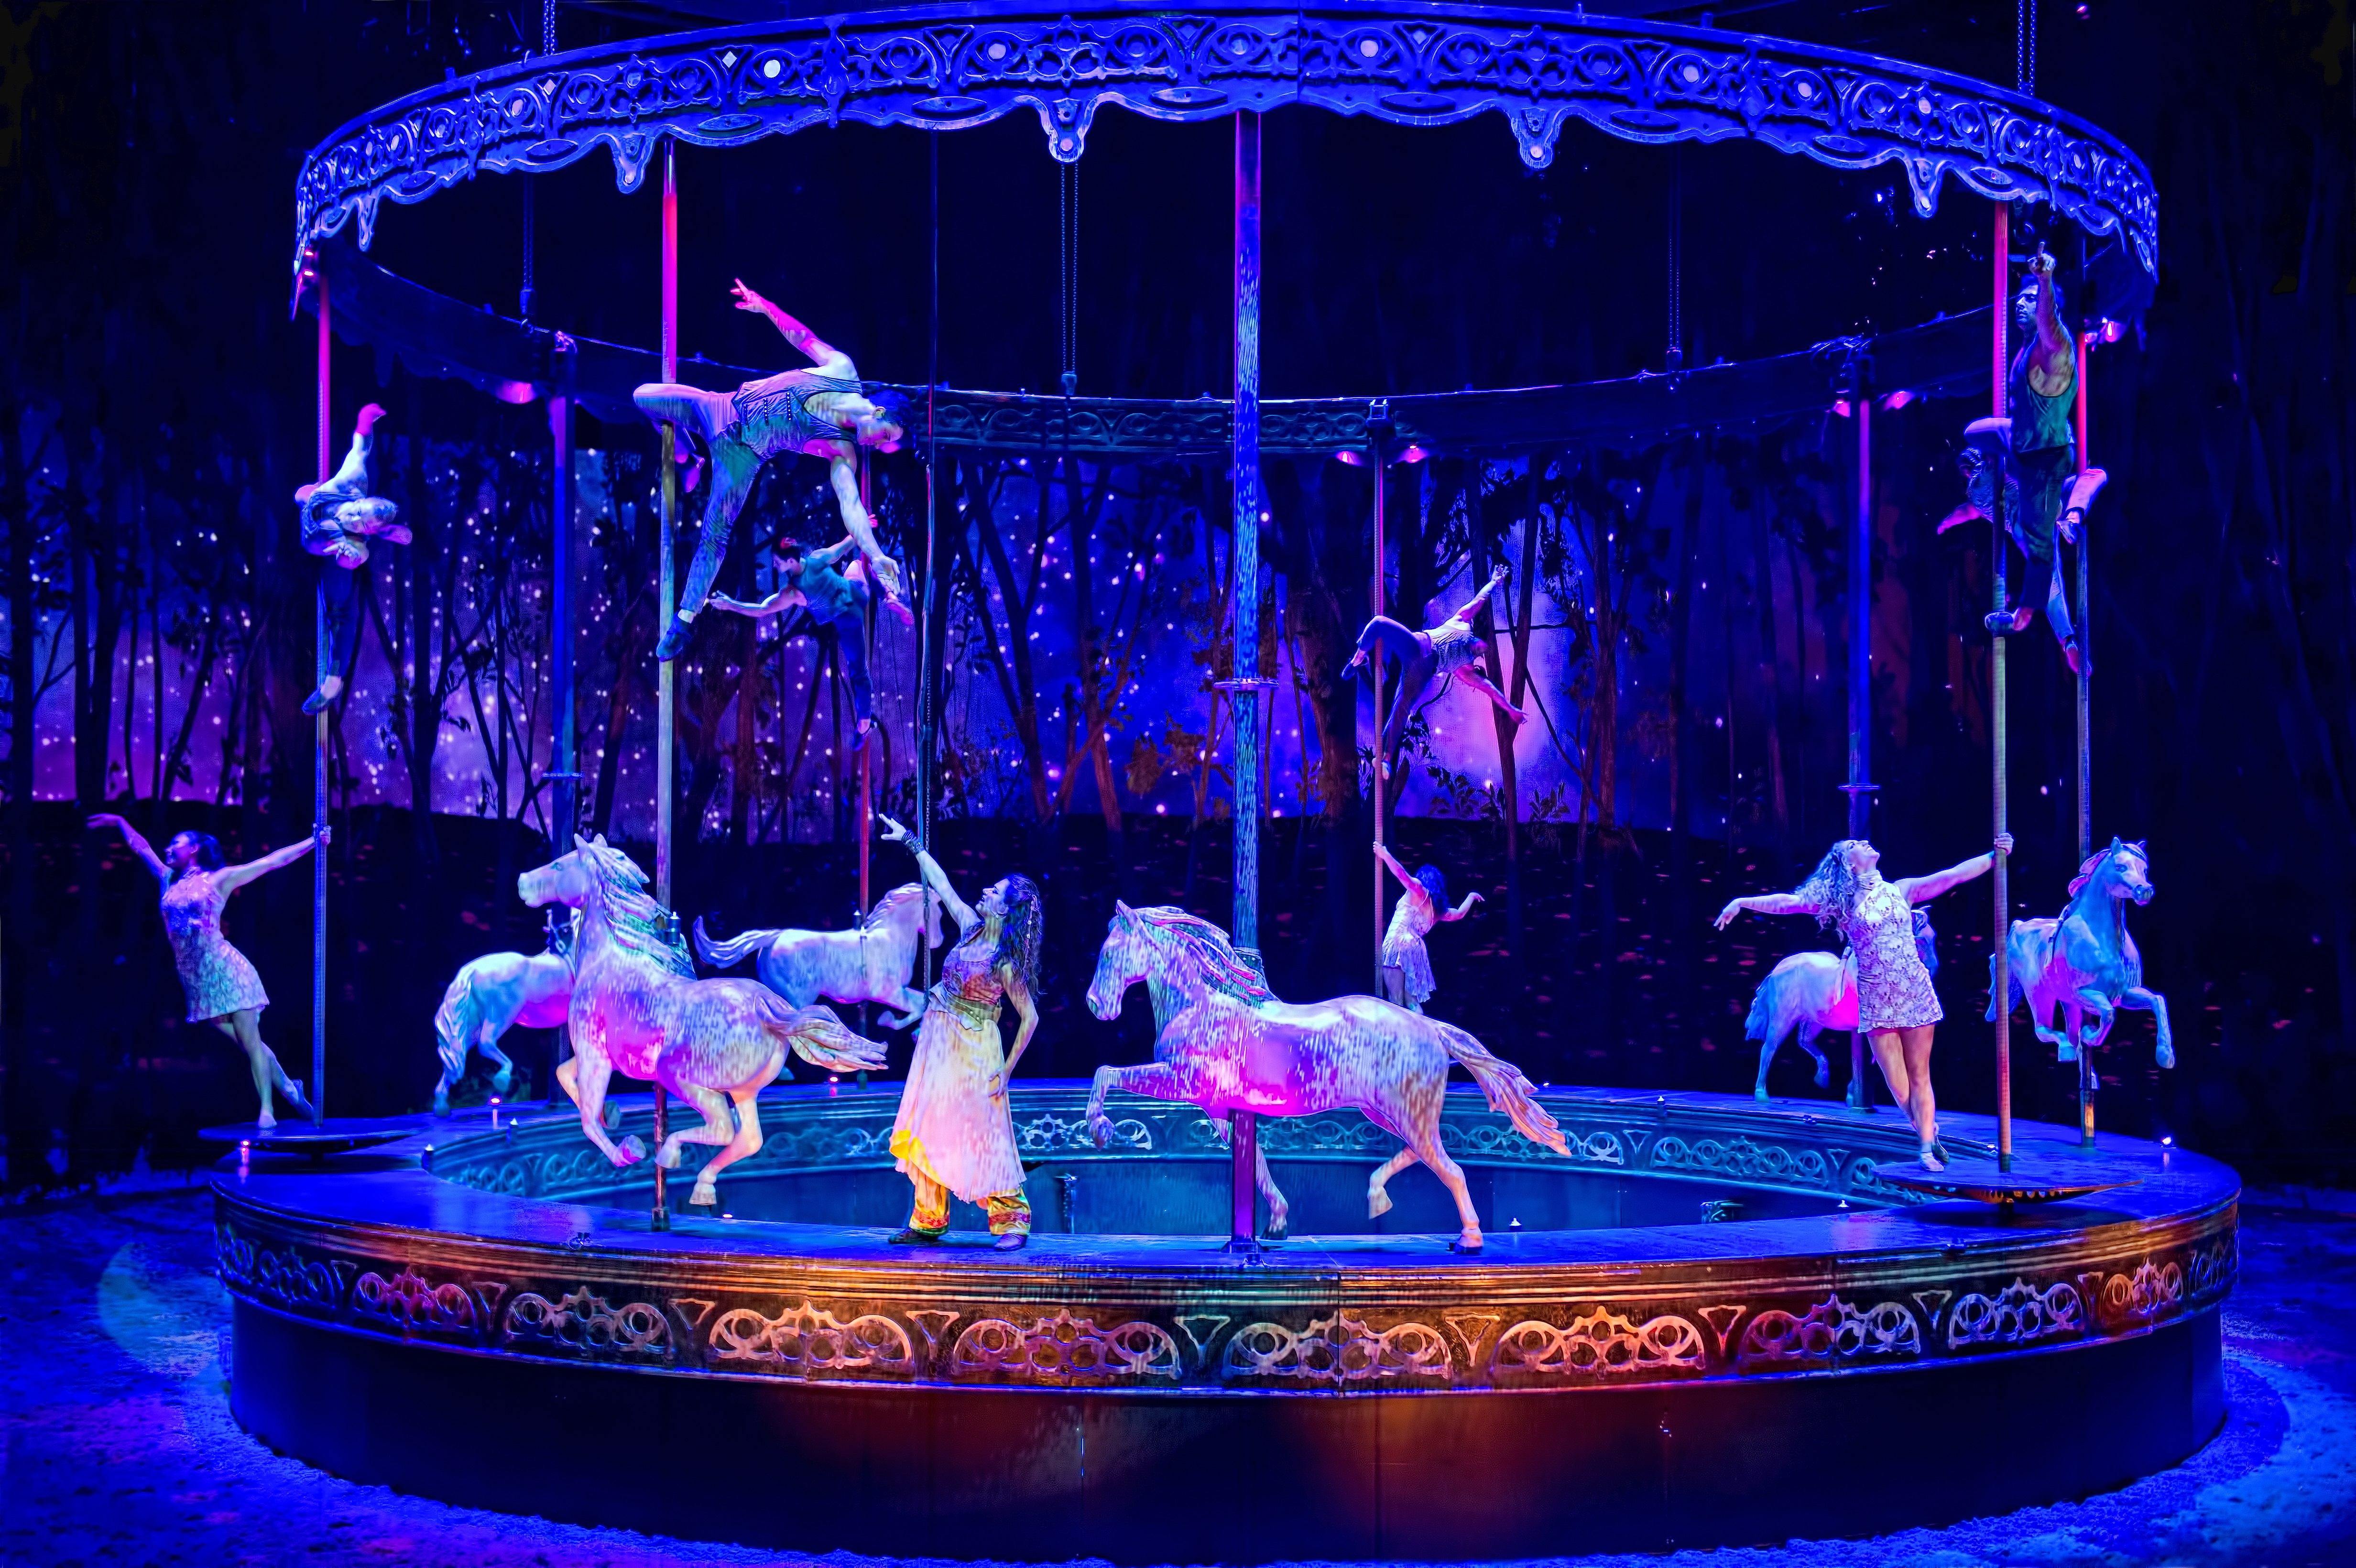 Get the complete schedule and information on ticket purchase for the Cavalia Odysseo equestrian show in Camarillo, California.